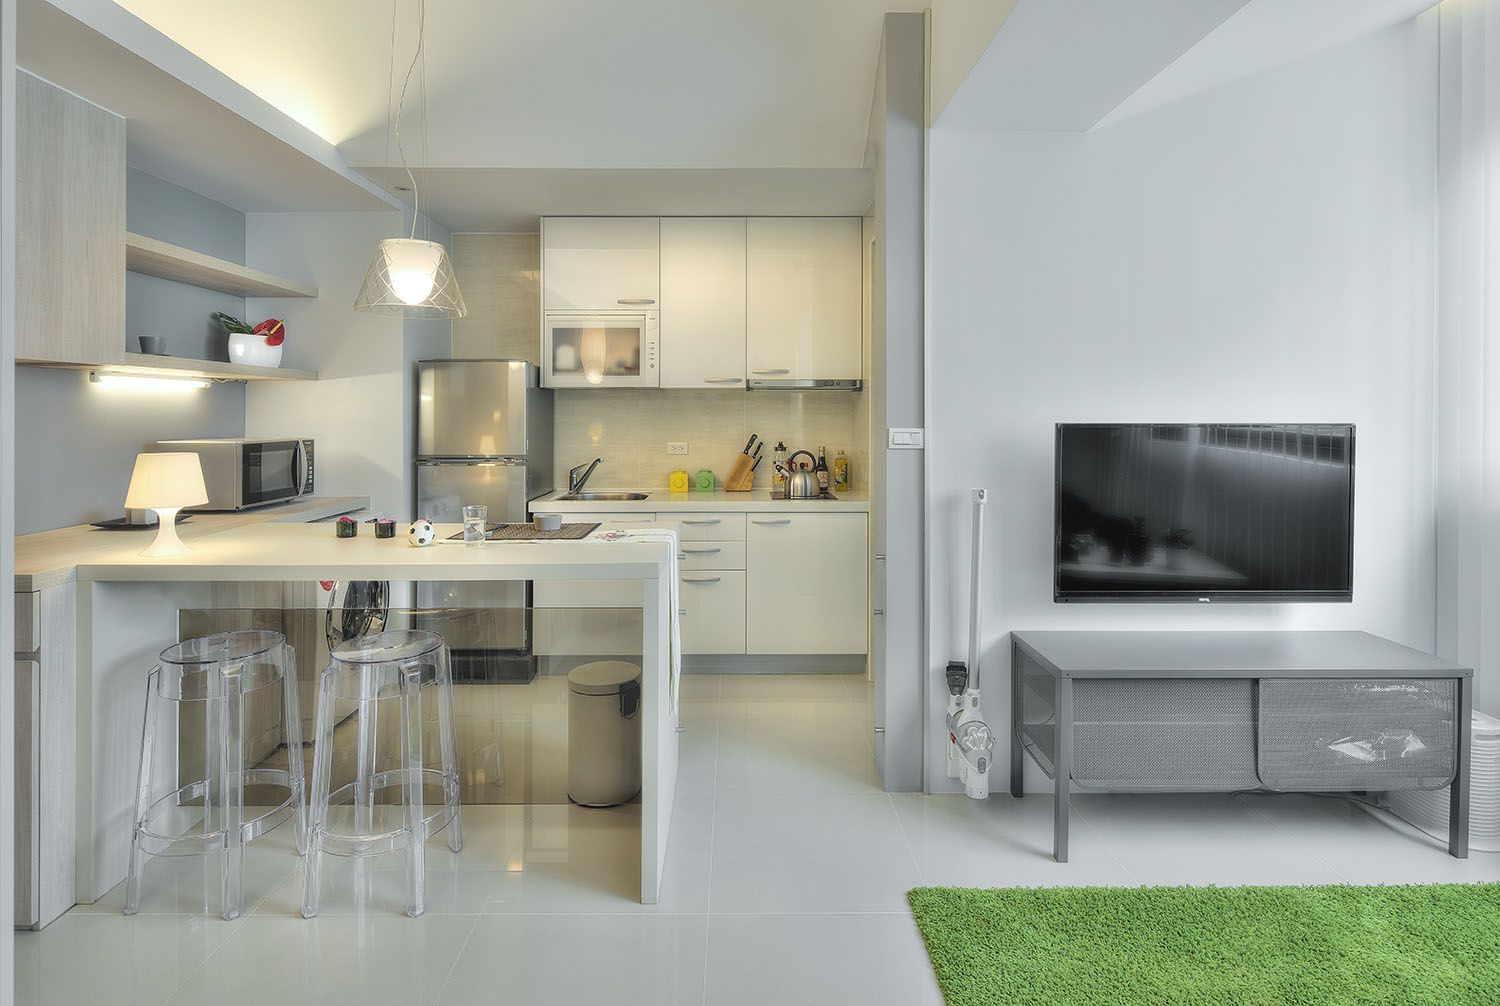 Studio Apartment Small Kitchen